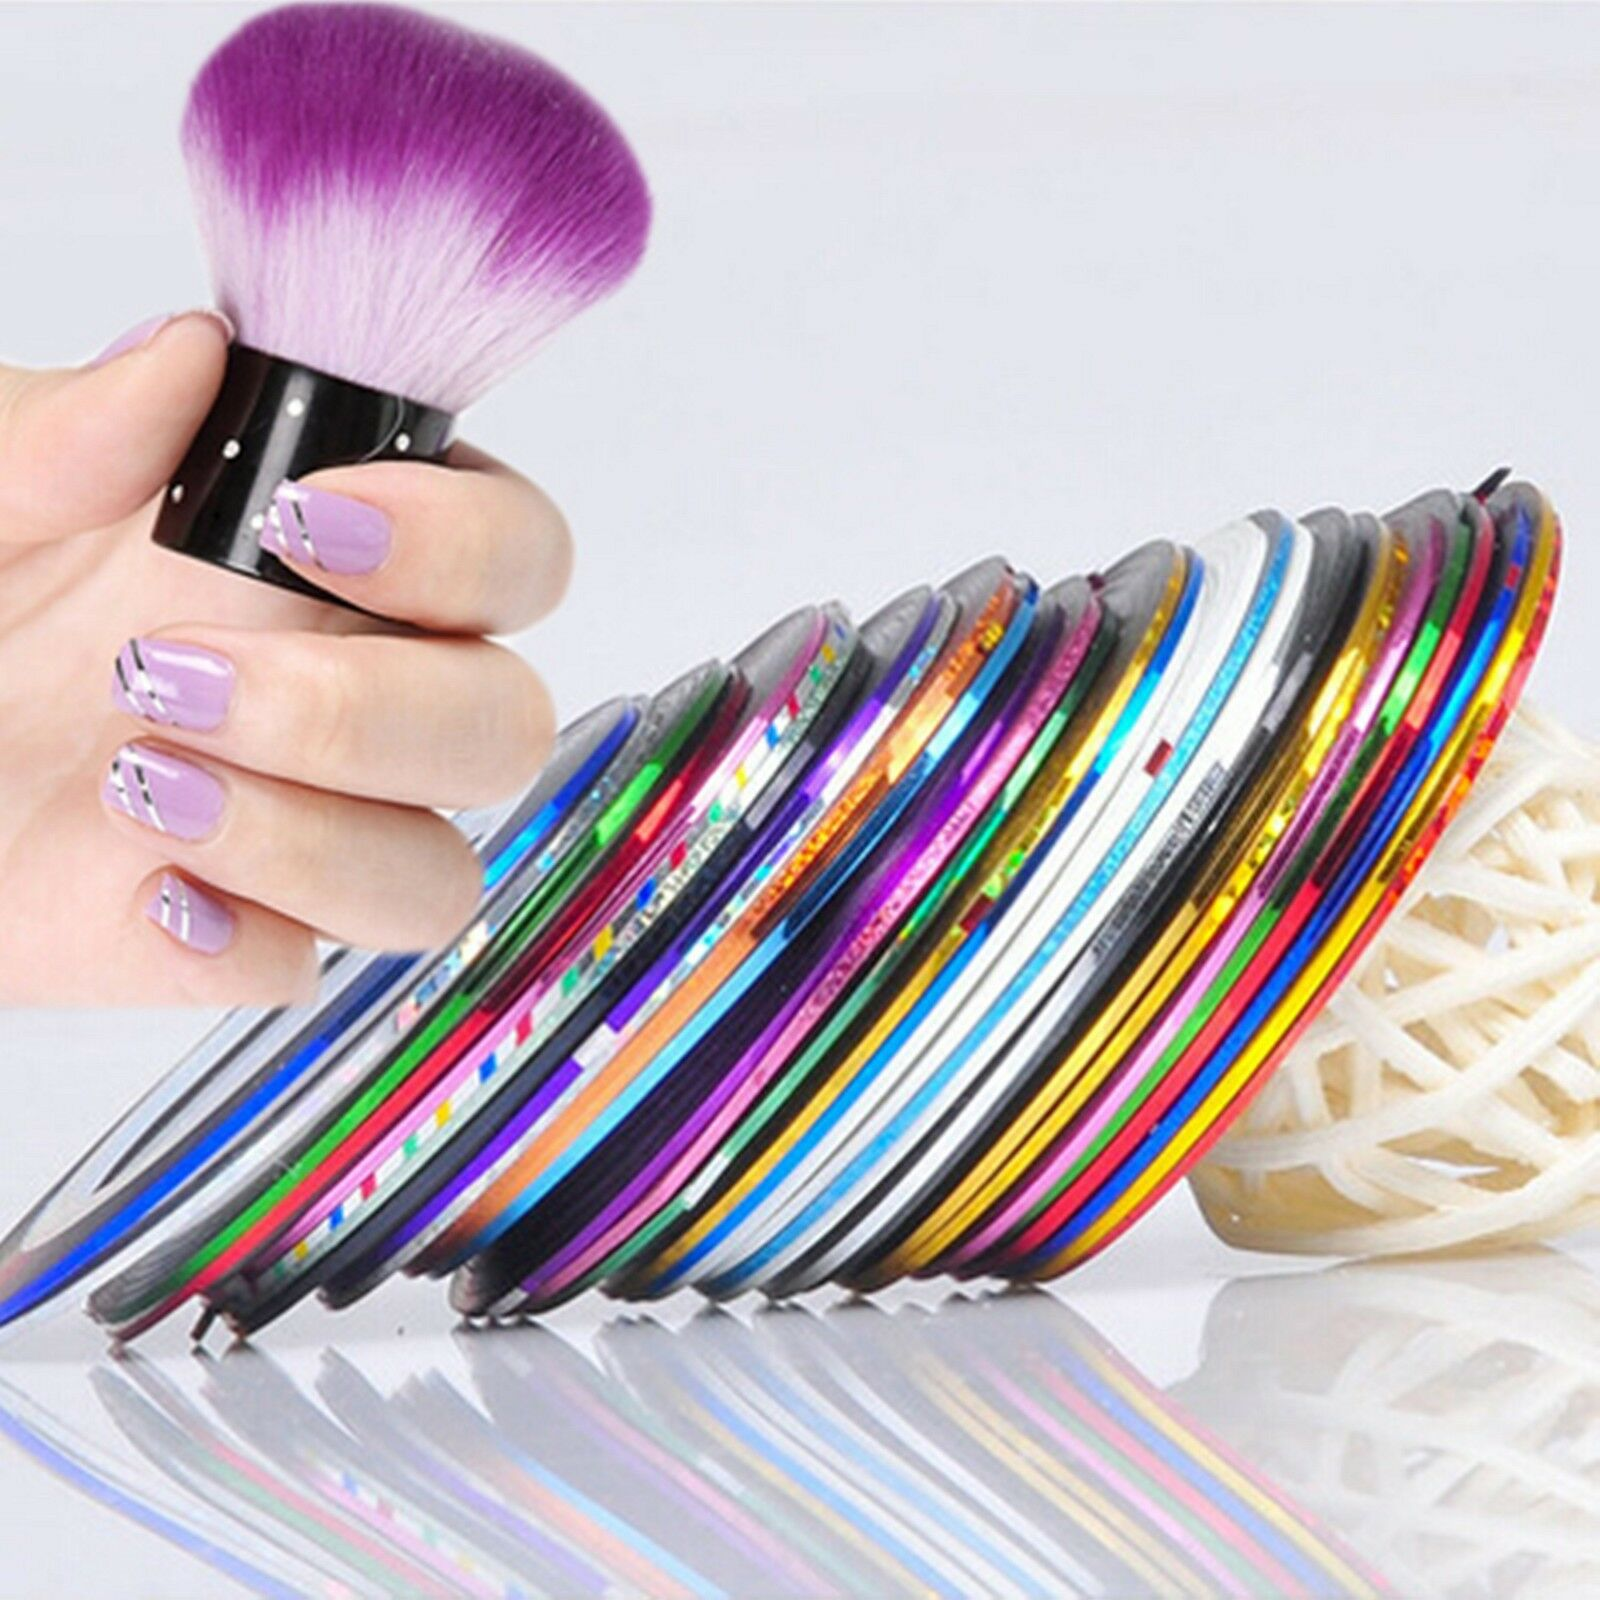 Nail Art Using Striping Tape: 10 Pcs Mixed Striping Tape Line Nail Art Tips Decoration